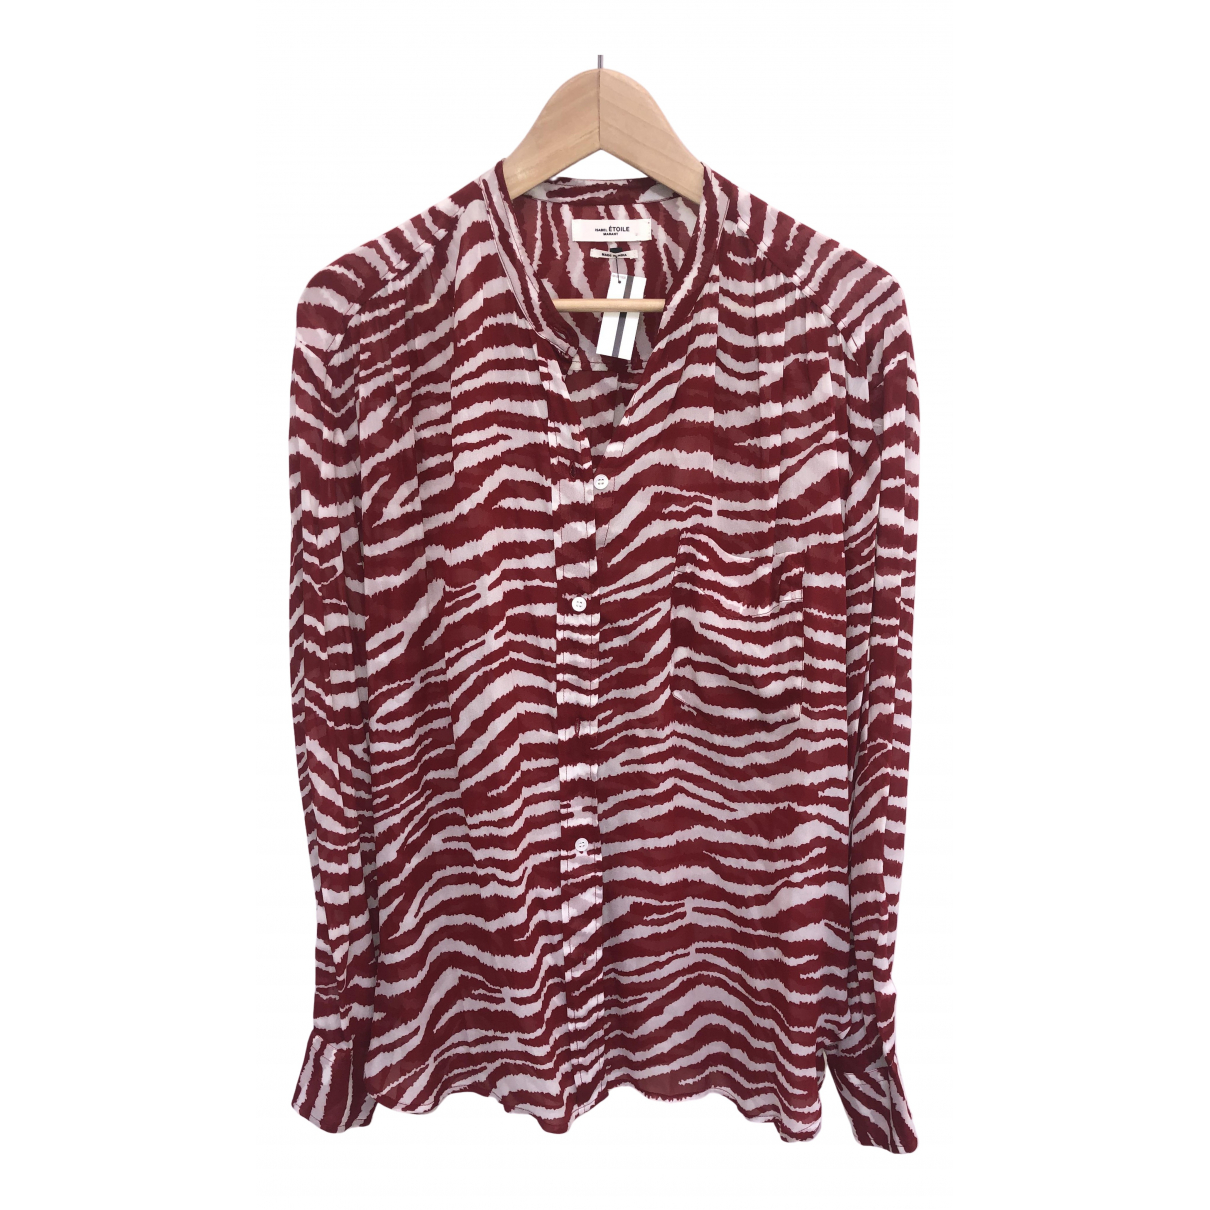 Isabel Marant N Red  top for Women 42 FR